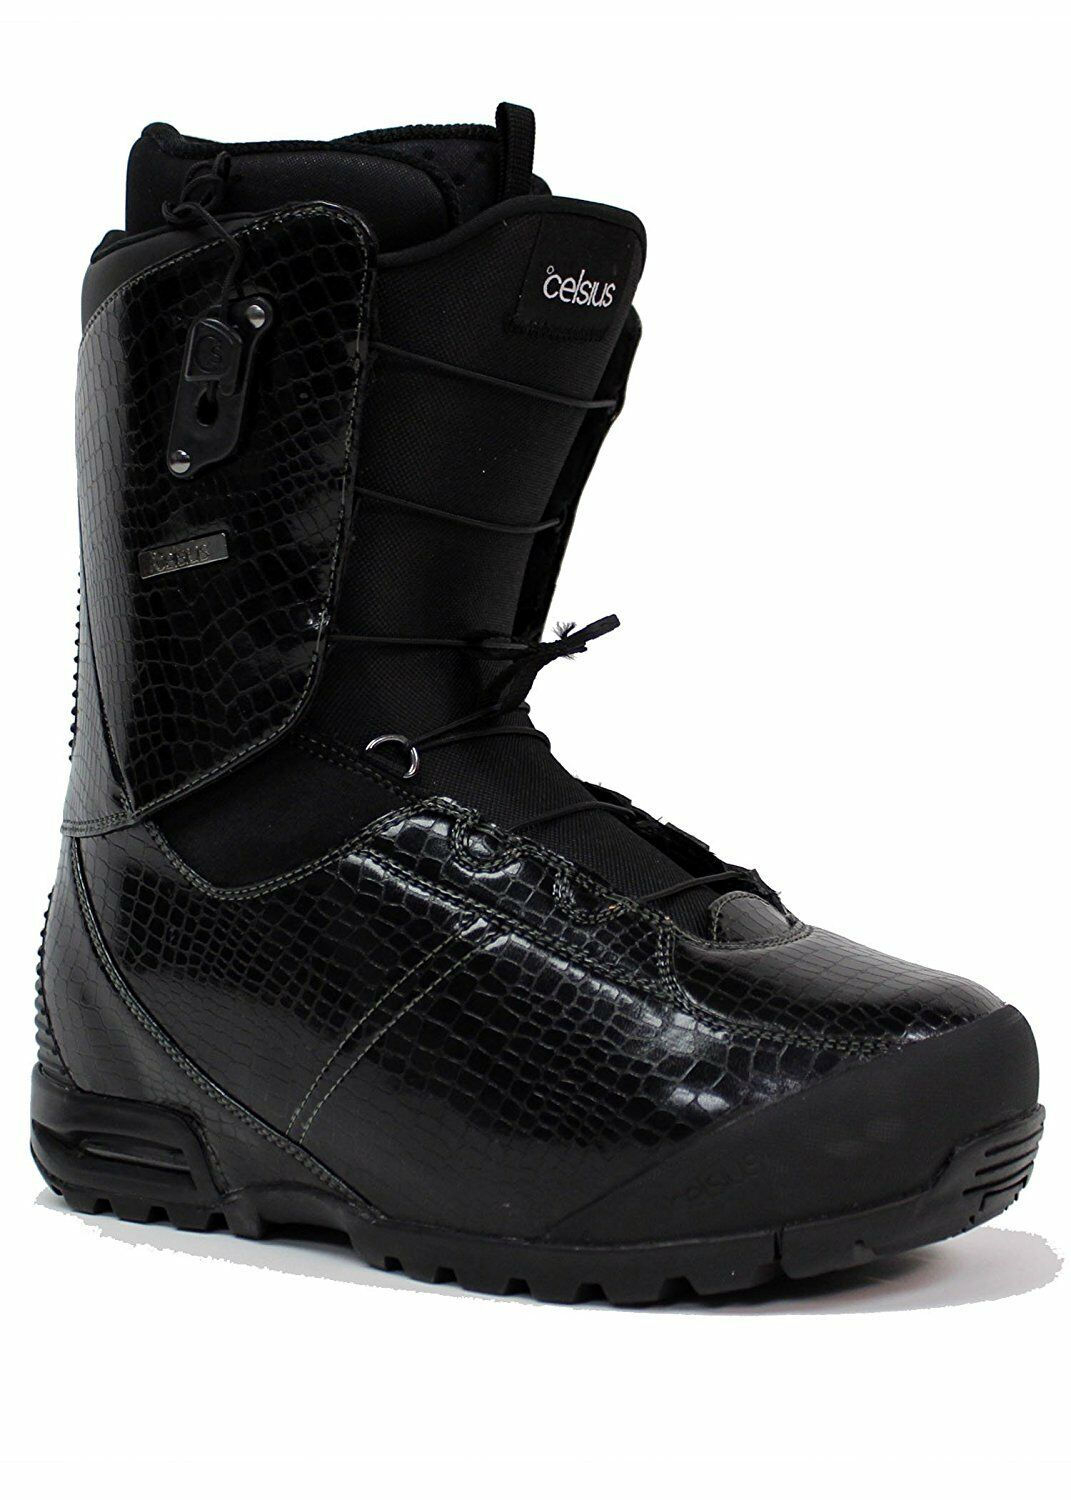 Celsius Manchester Men's Snowboard Boots US  Size 7 (Stiff, Ozone Speed Lace)  all products get up to 34% off